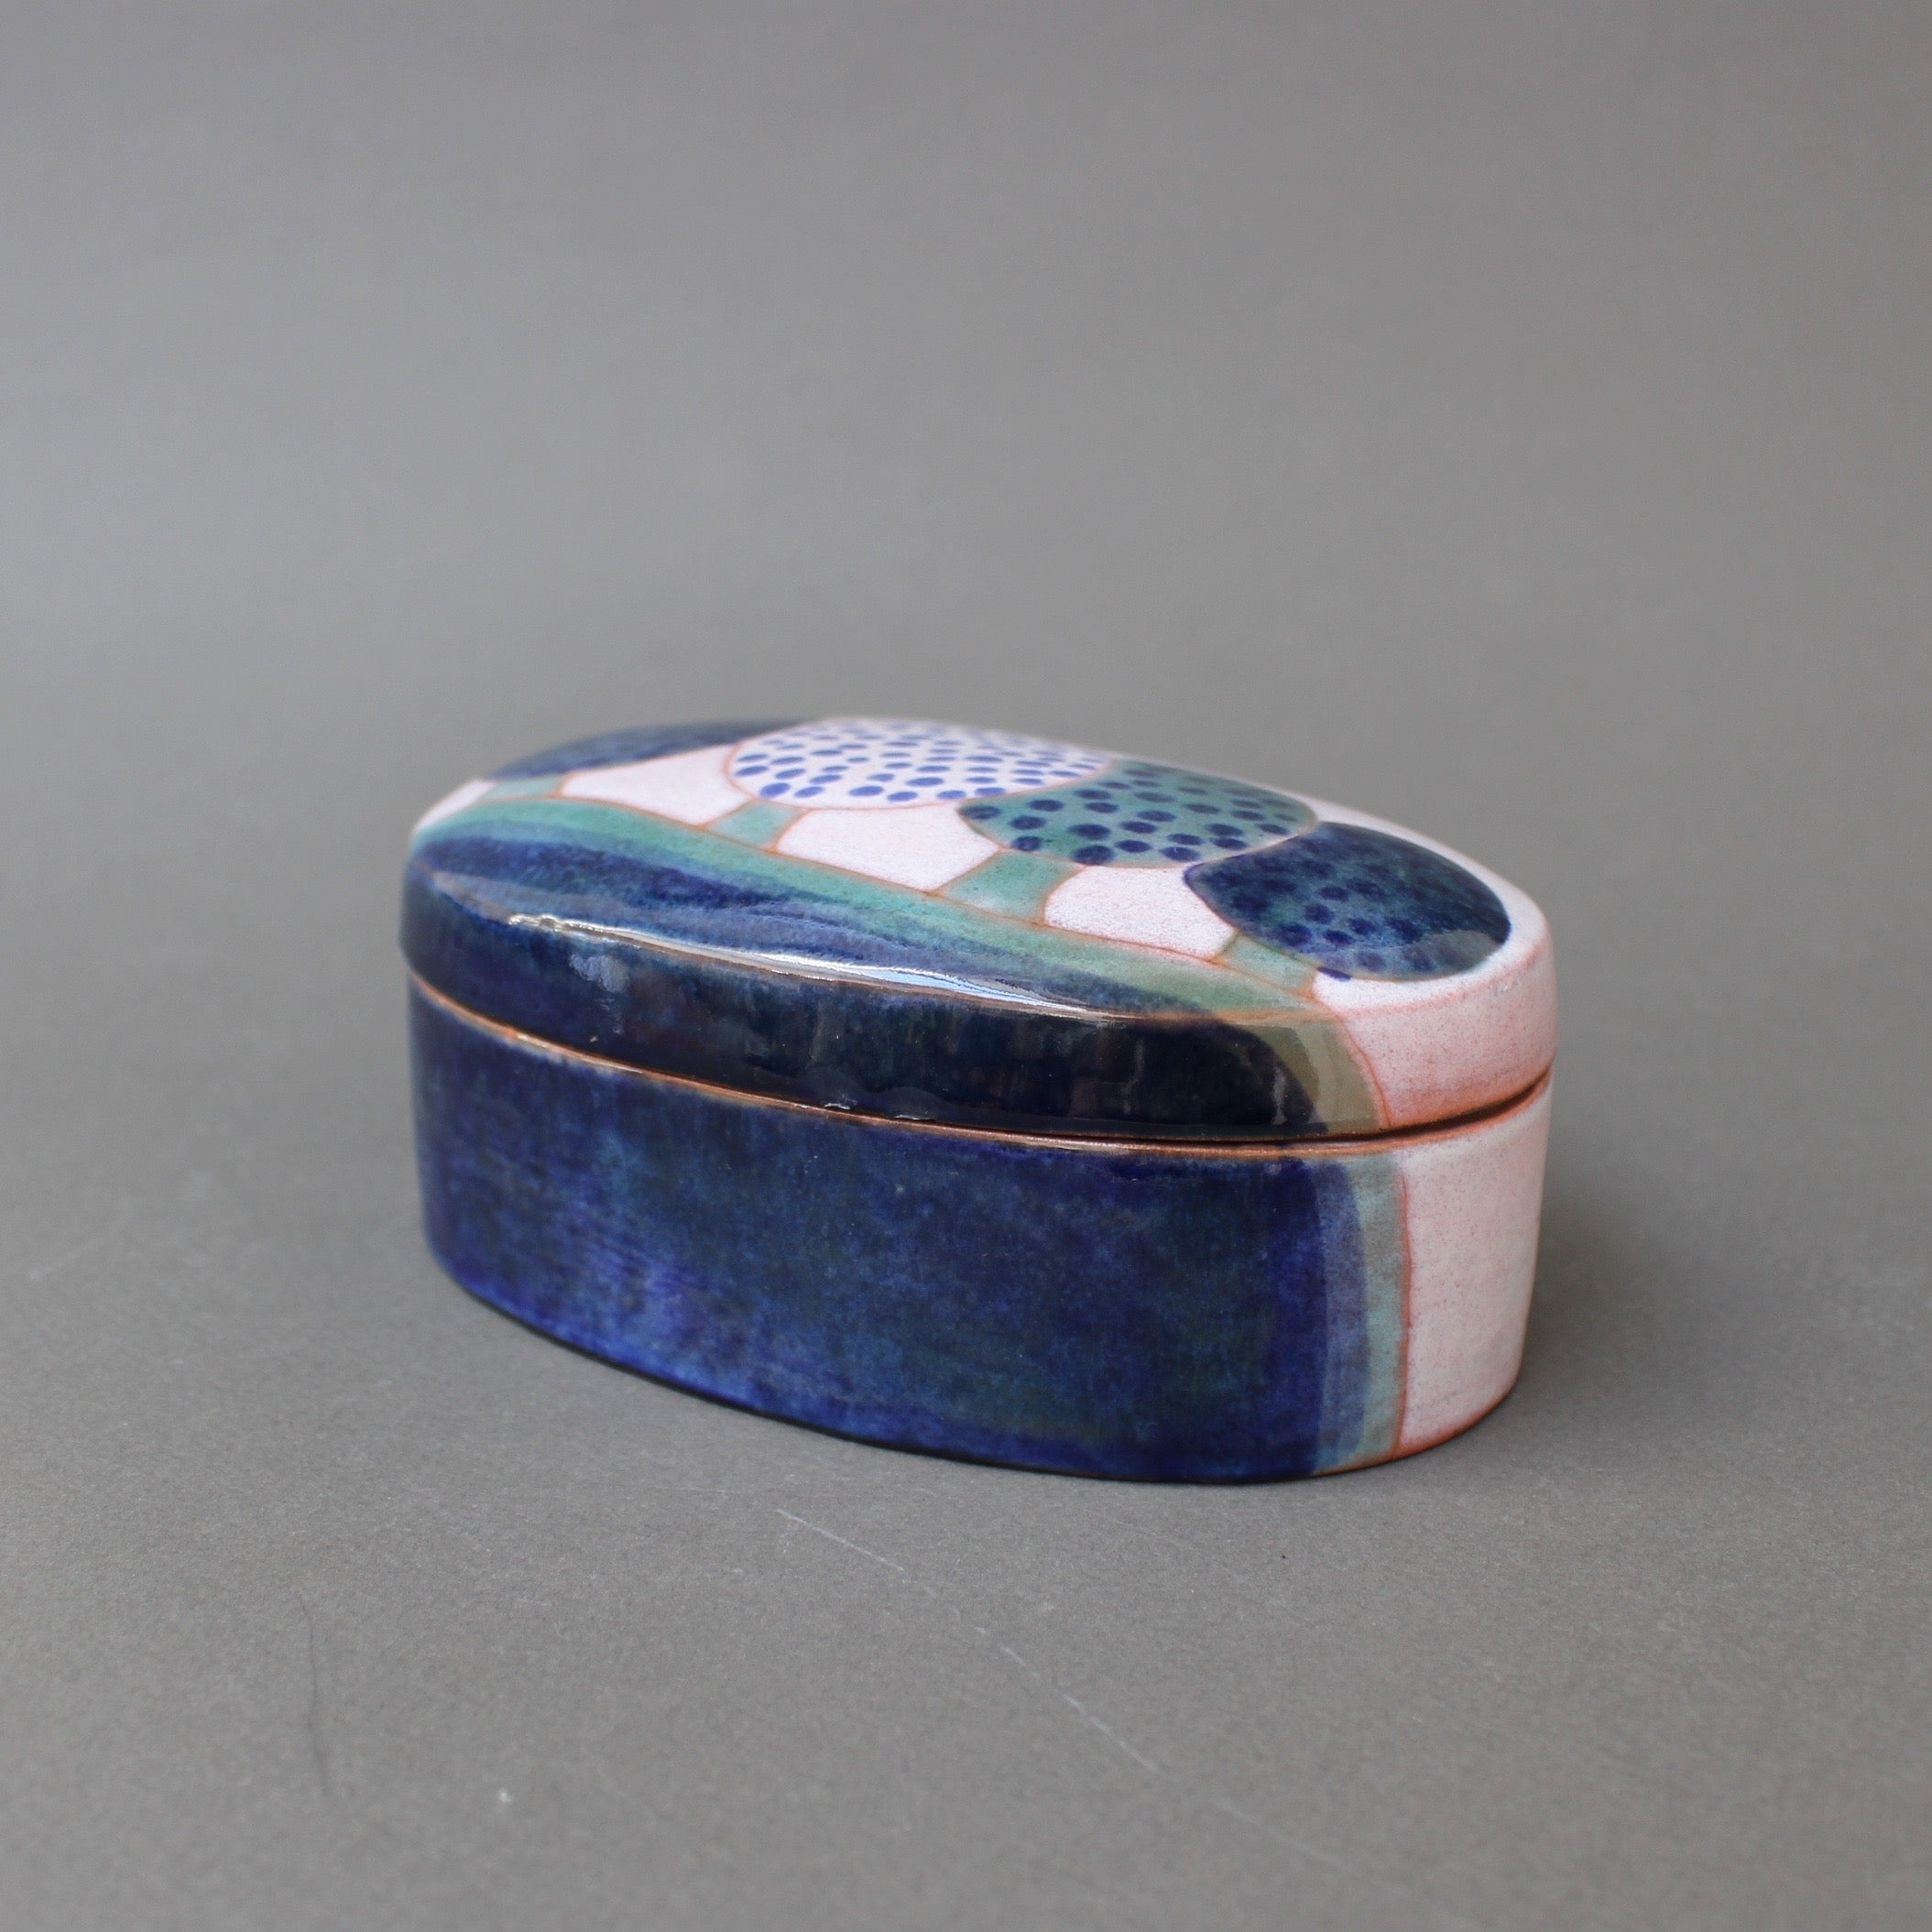 Ceramic Decorative Box by Frères Cloutier (circa 1970s)